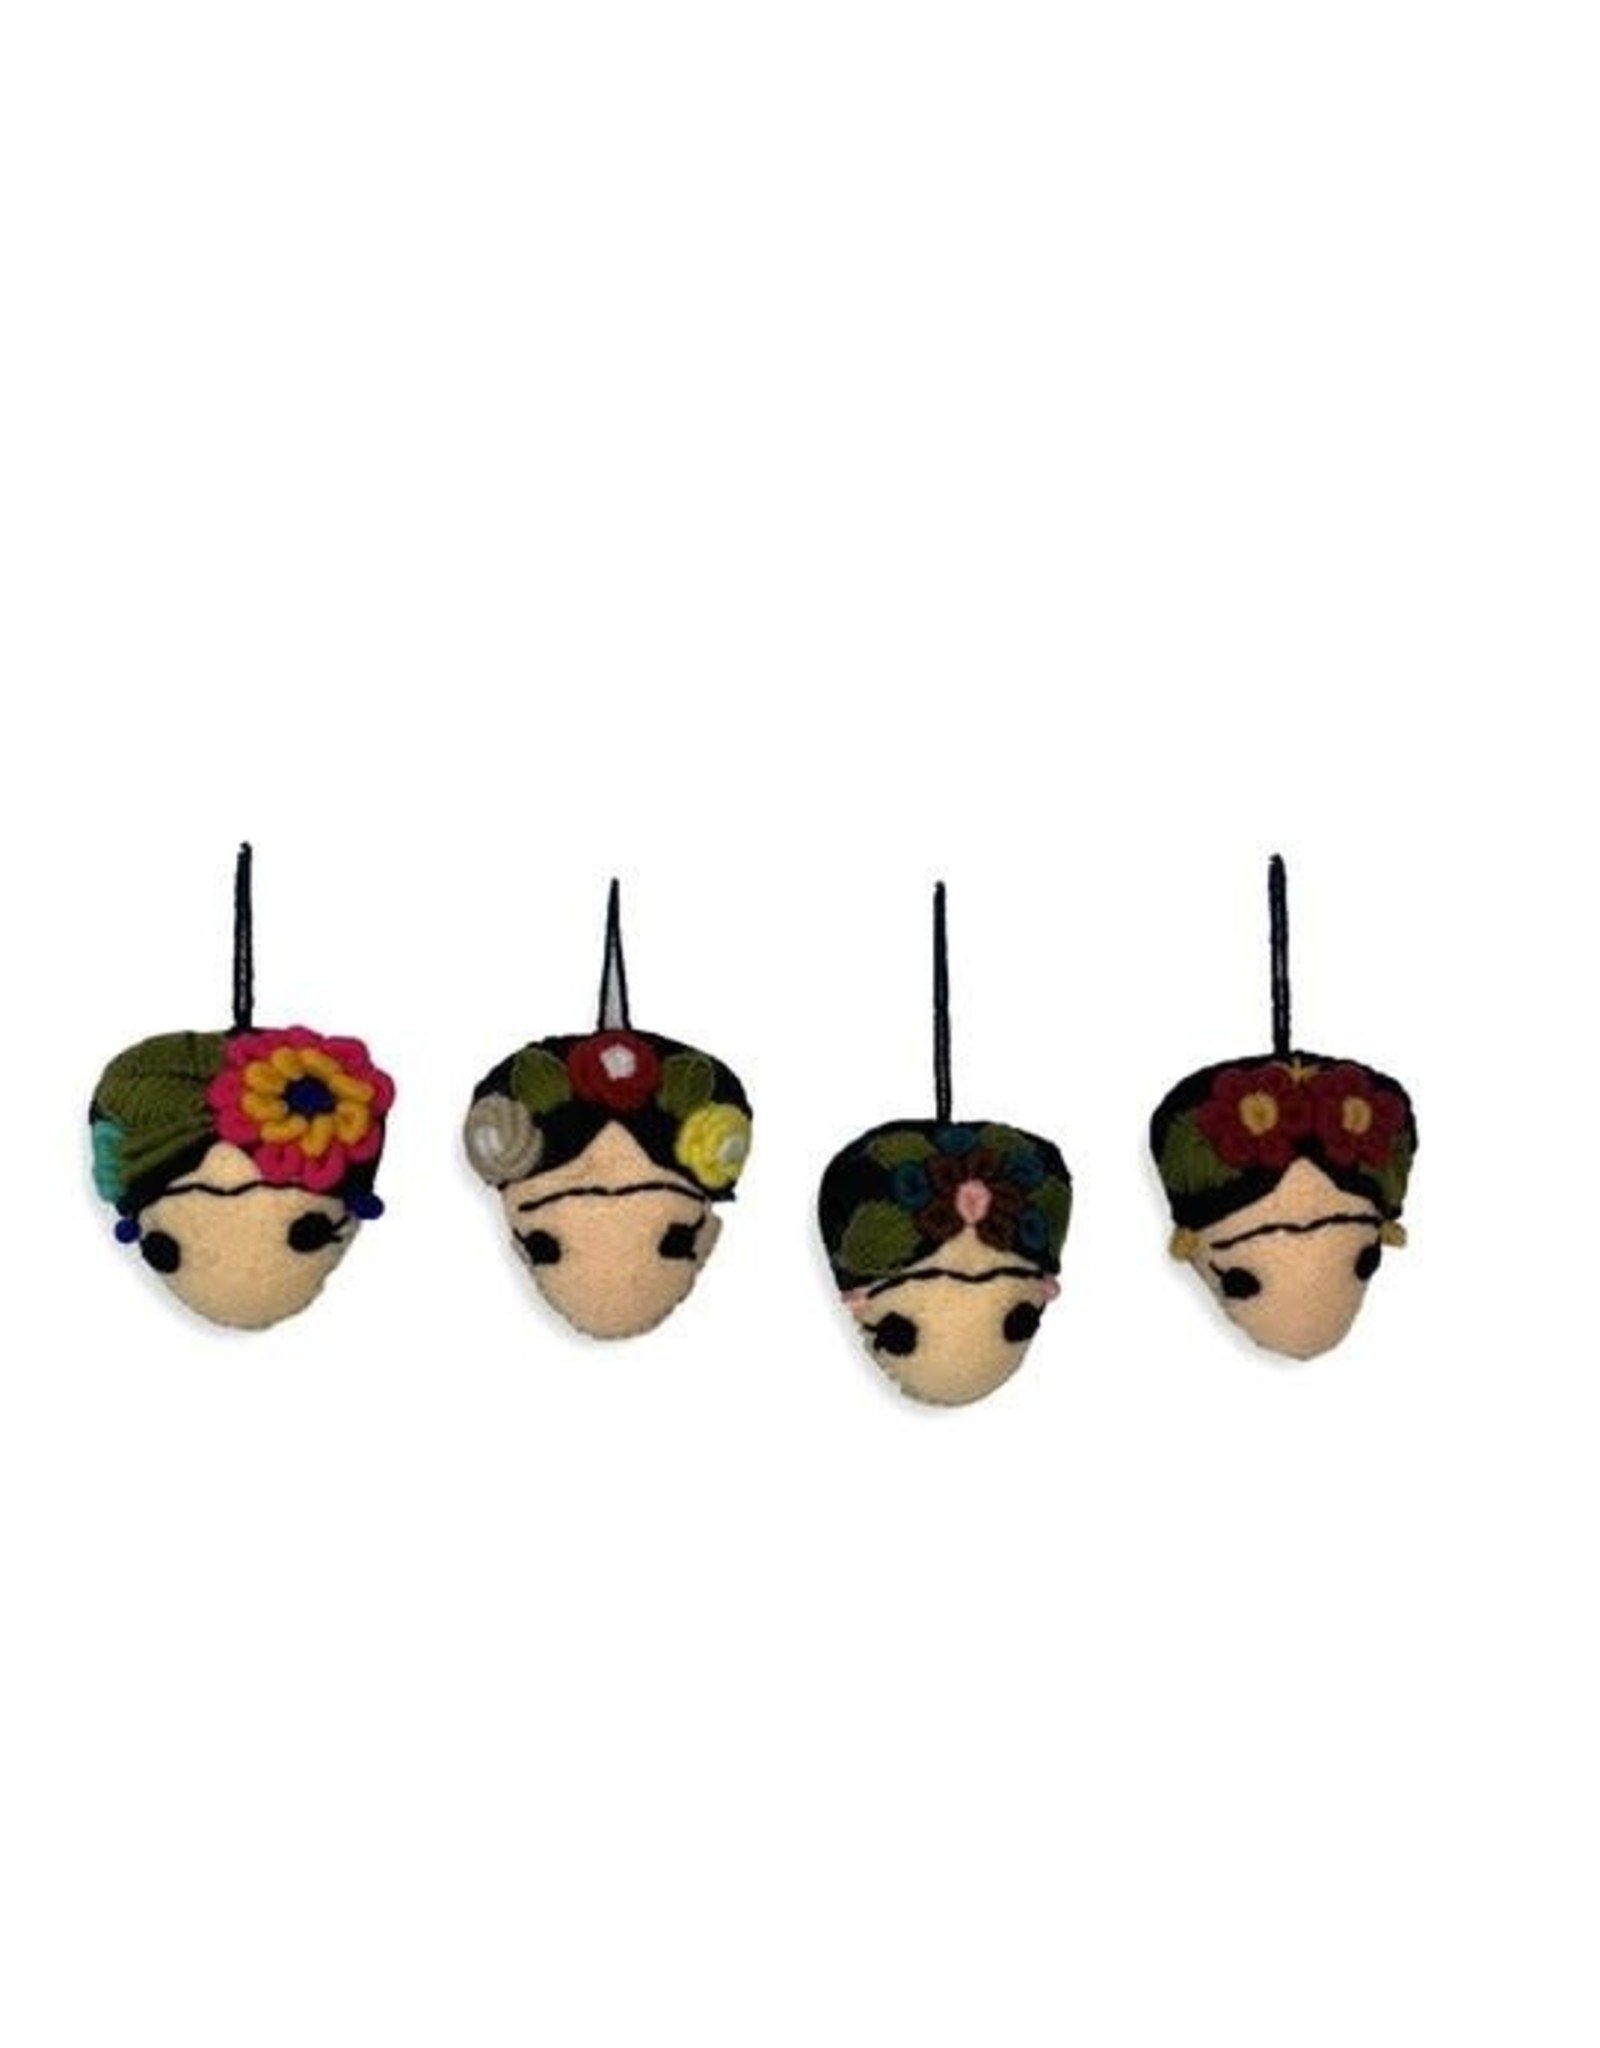 Frida Kahlo Felted Ornament INDIVIDUAL, Mexico